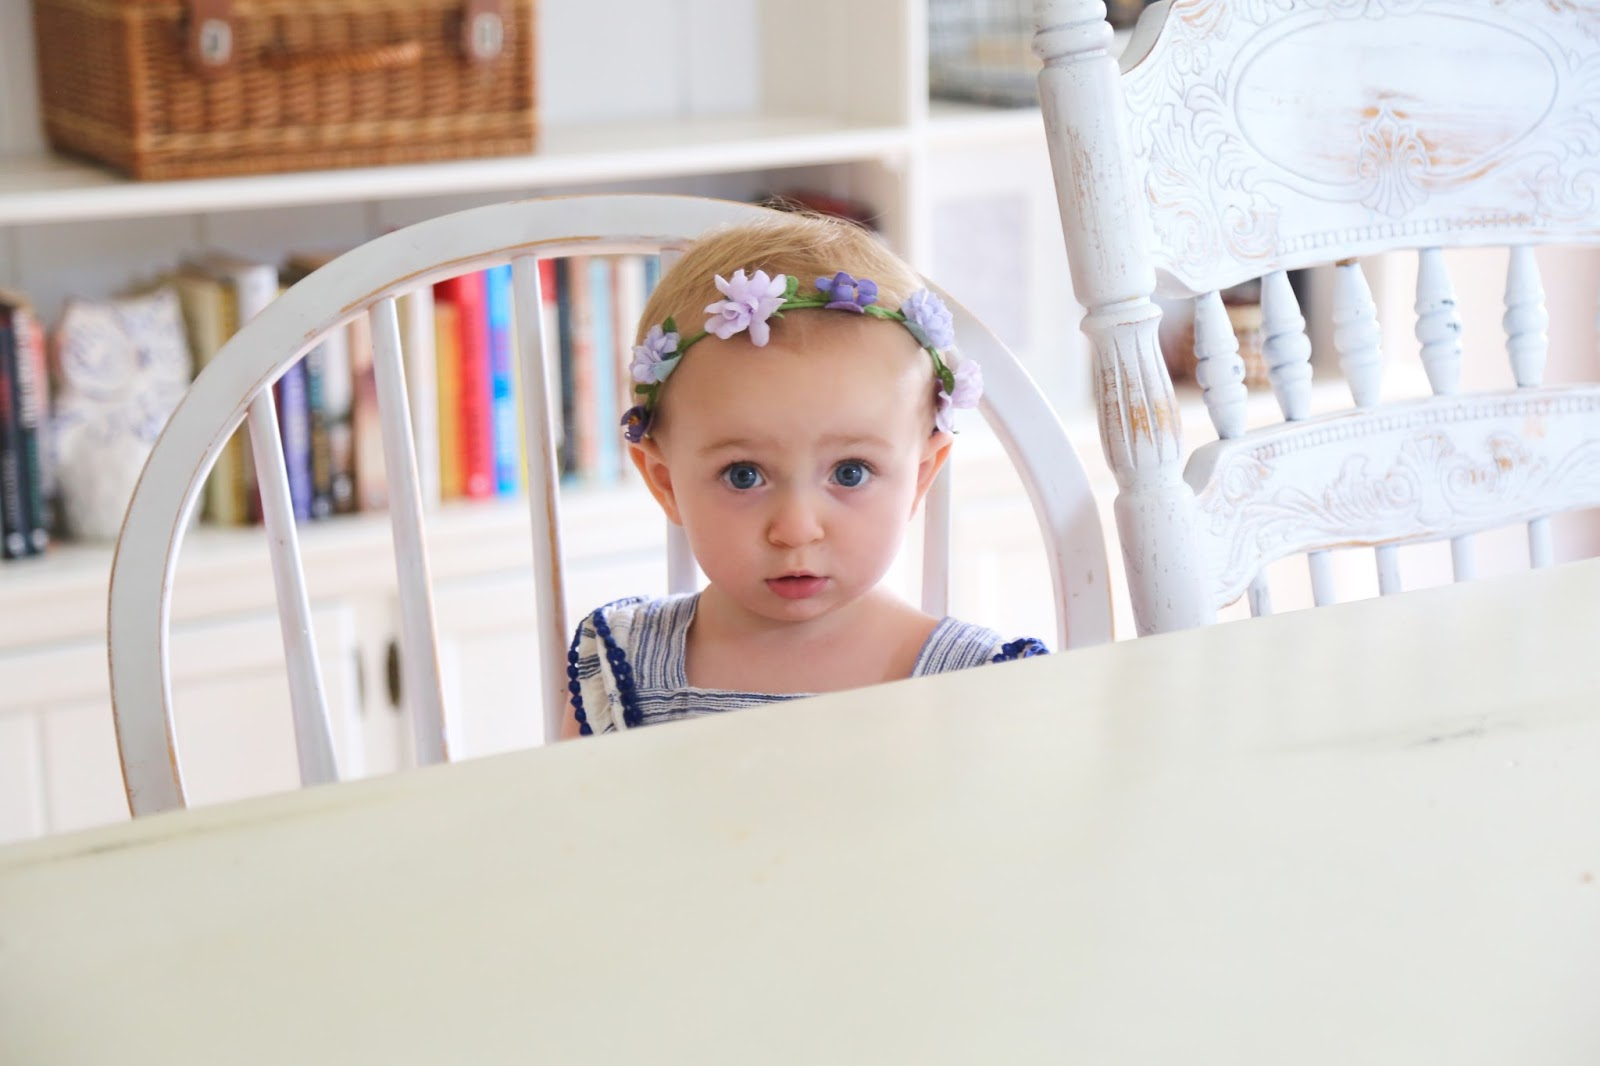 Sugar hill little girls flower crowns isla always doing something mischievous or dangerous keeping my adrenaline in check she has suchhhh a cute personality i cant even put my finger on izmirmasajfo